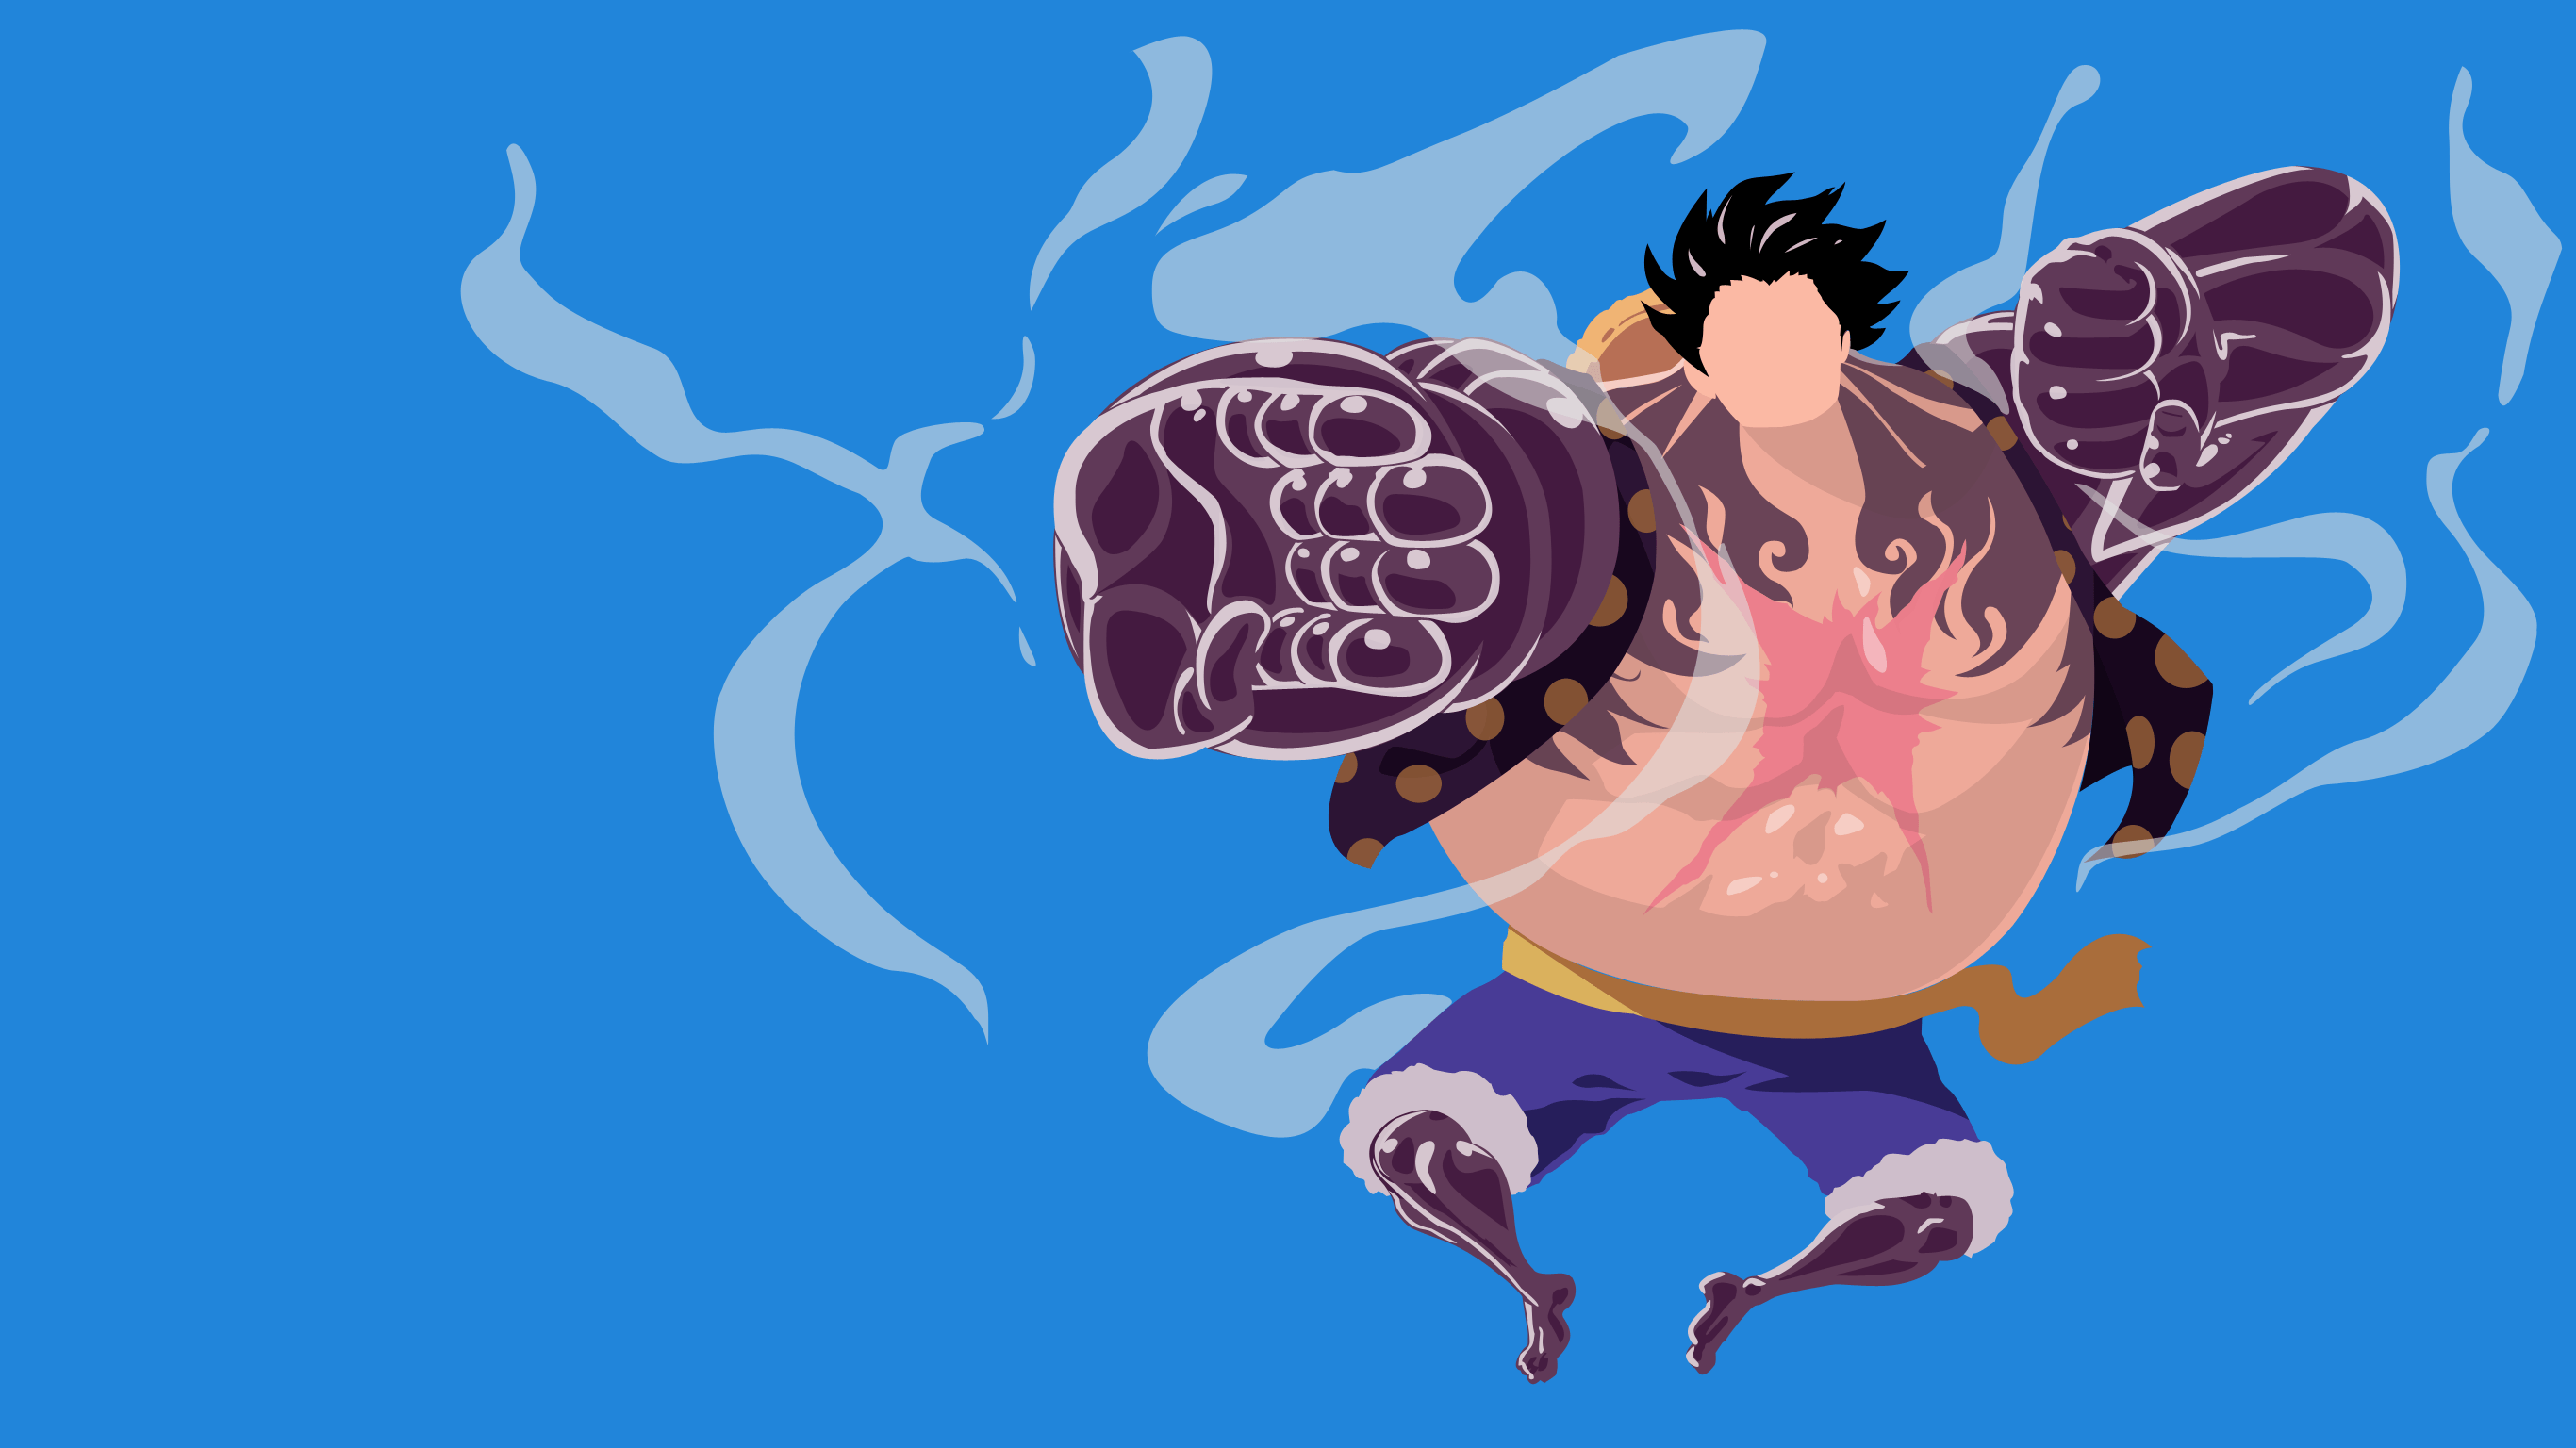 Luffy Wallpaper 3d Onepiece Lutfy Gear Fourth Hd Wallpaper Background Image